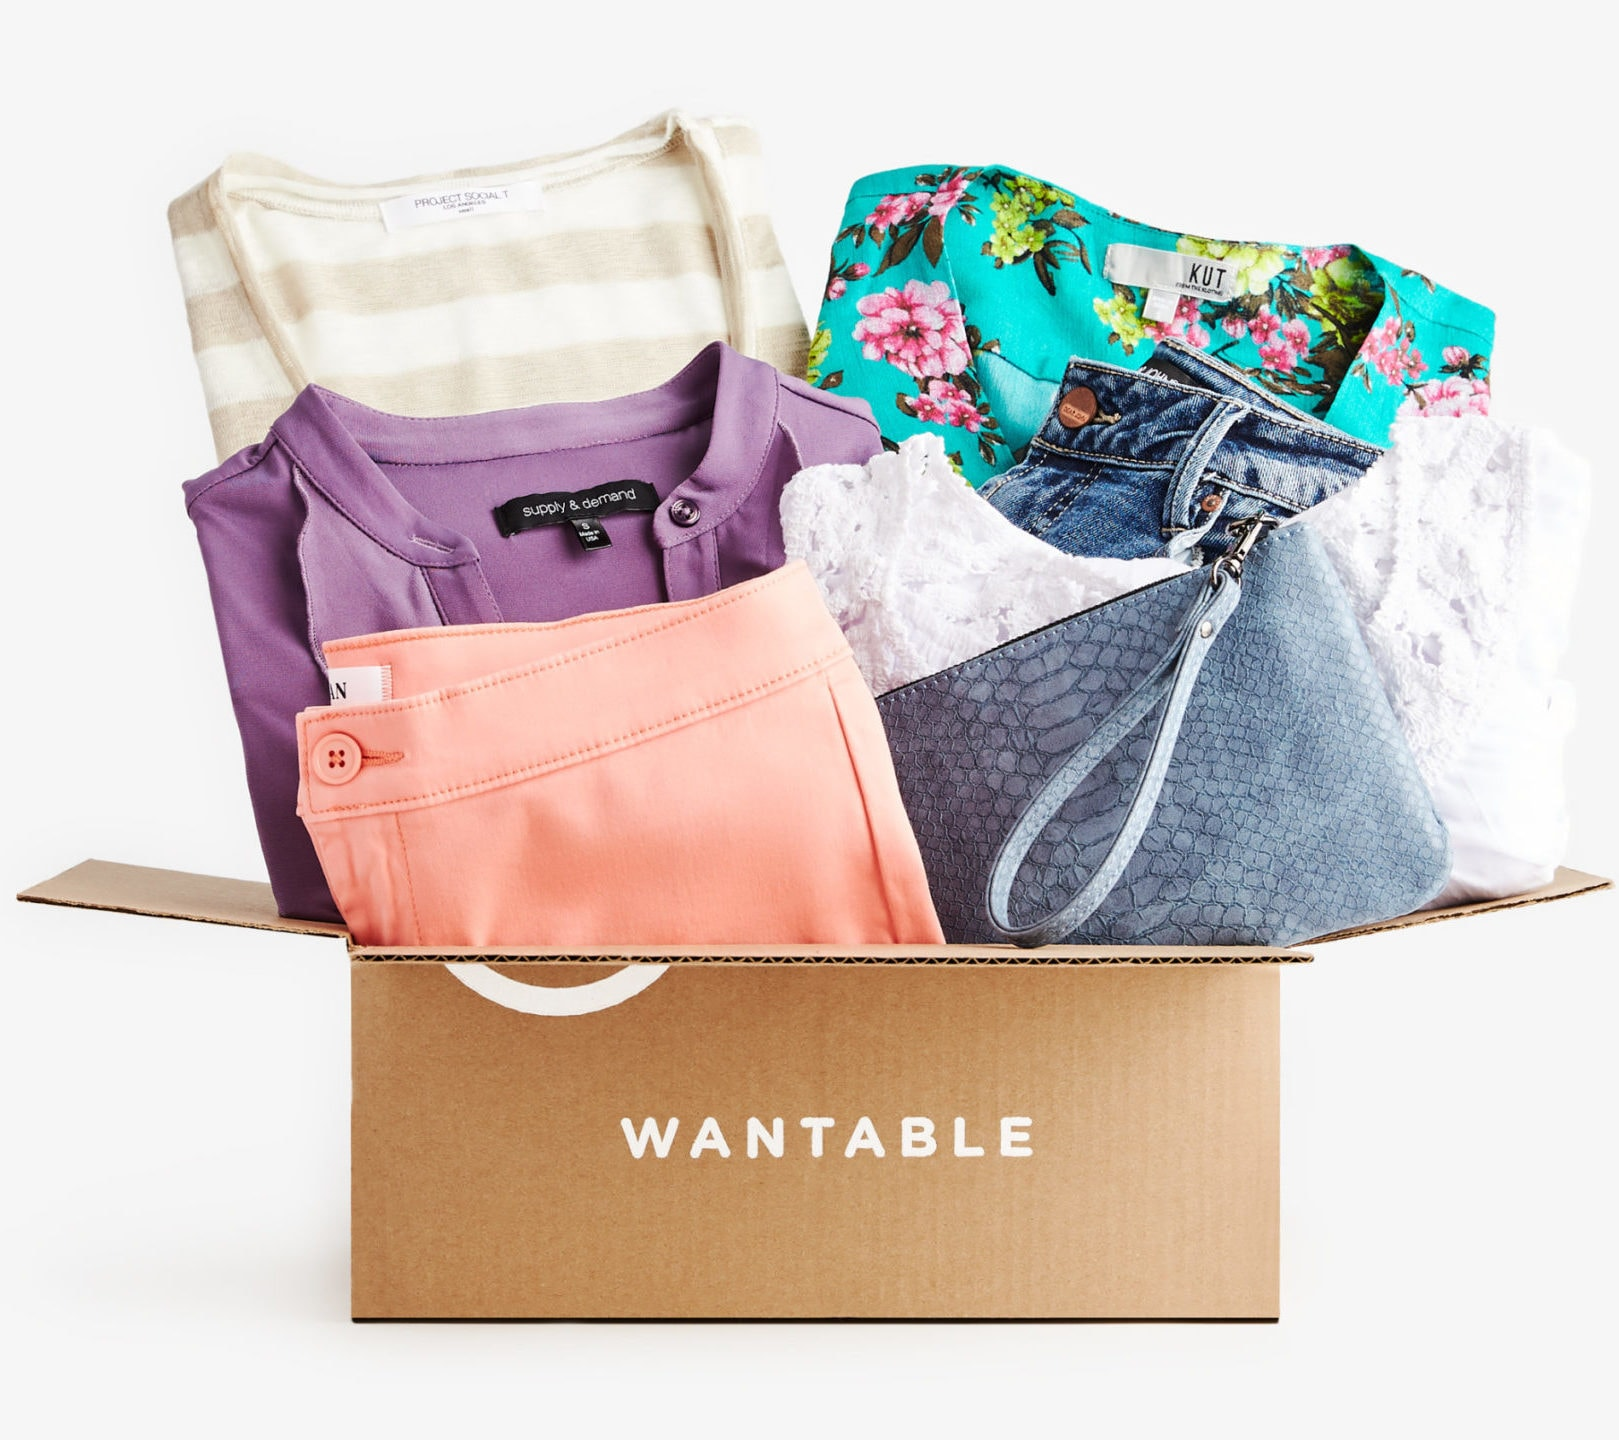 wantable reviews 2021